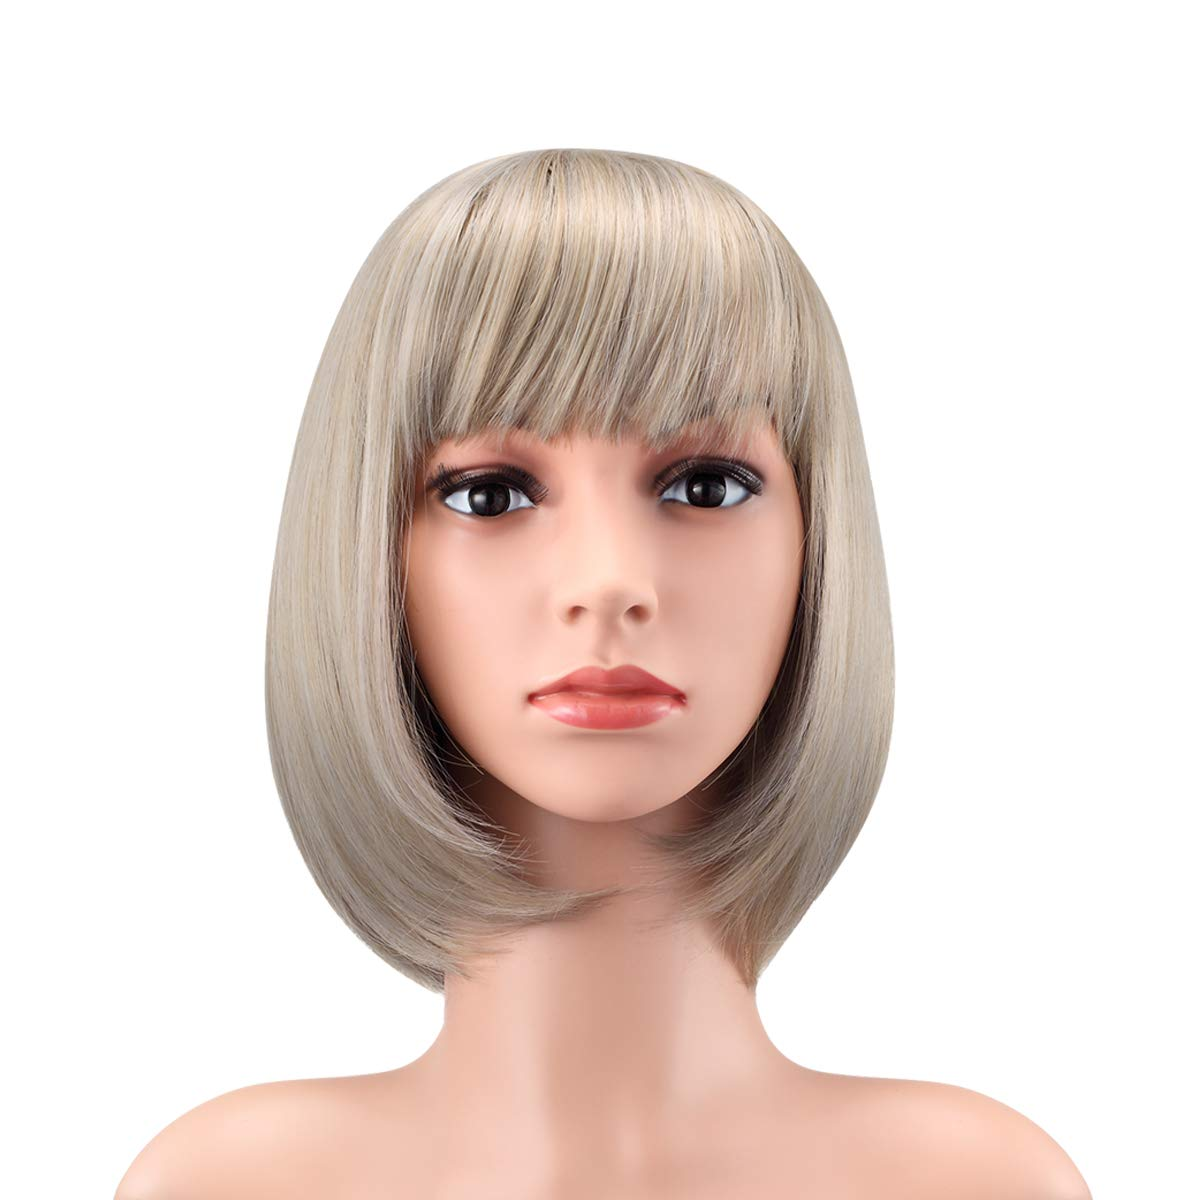 """WENDY HAIR Heat Resistant Short Bob Hair Wigs 12"""" Straight with Flat Bangs Synthetic Colorful Daily Cosplay Party Wig for Women Natural As Real Hair, Dusky Gold"""